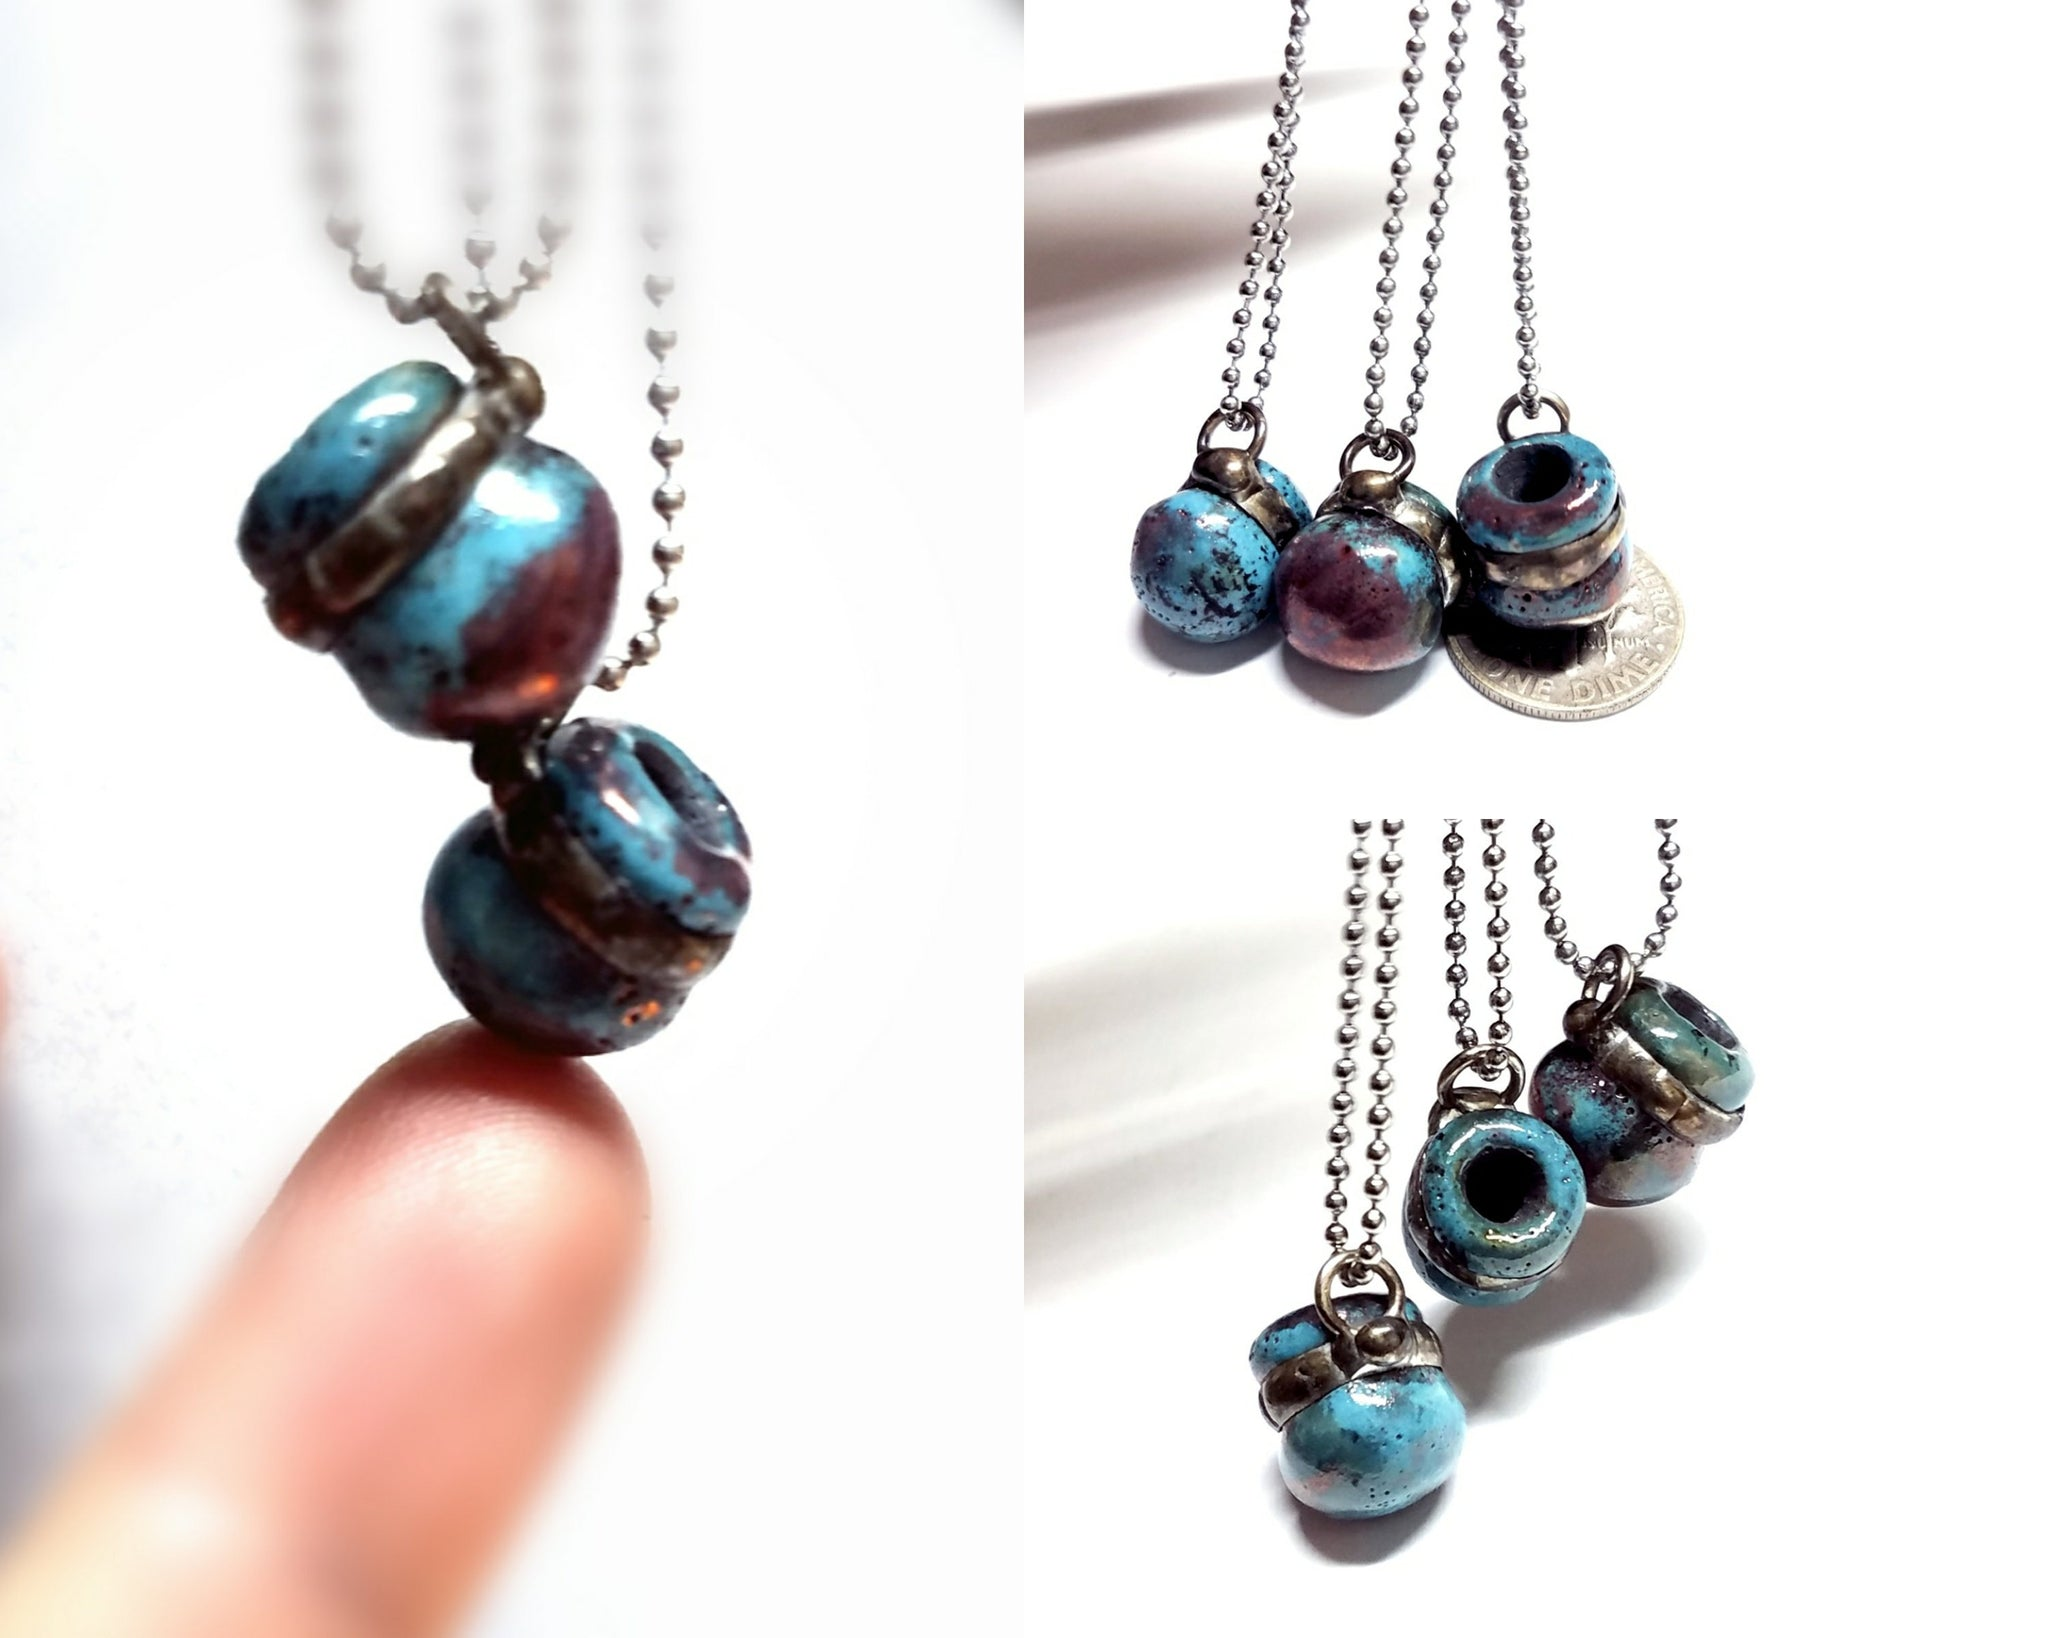 Tiny aromatherapy bottle necklace